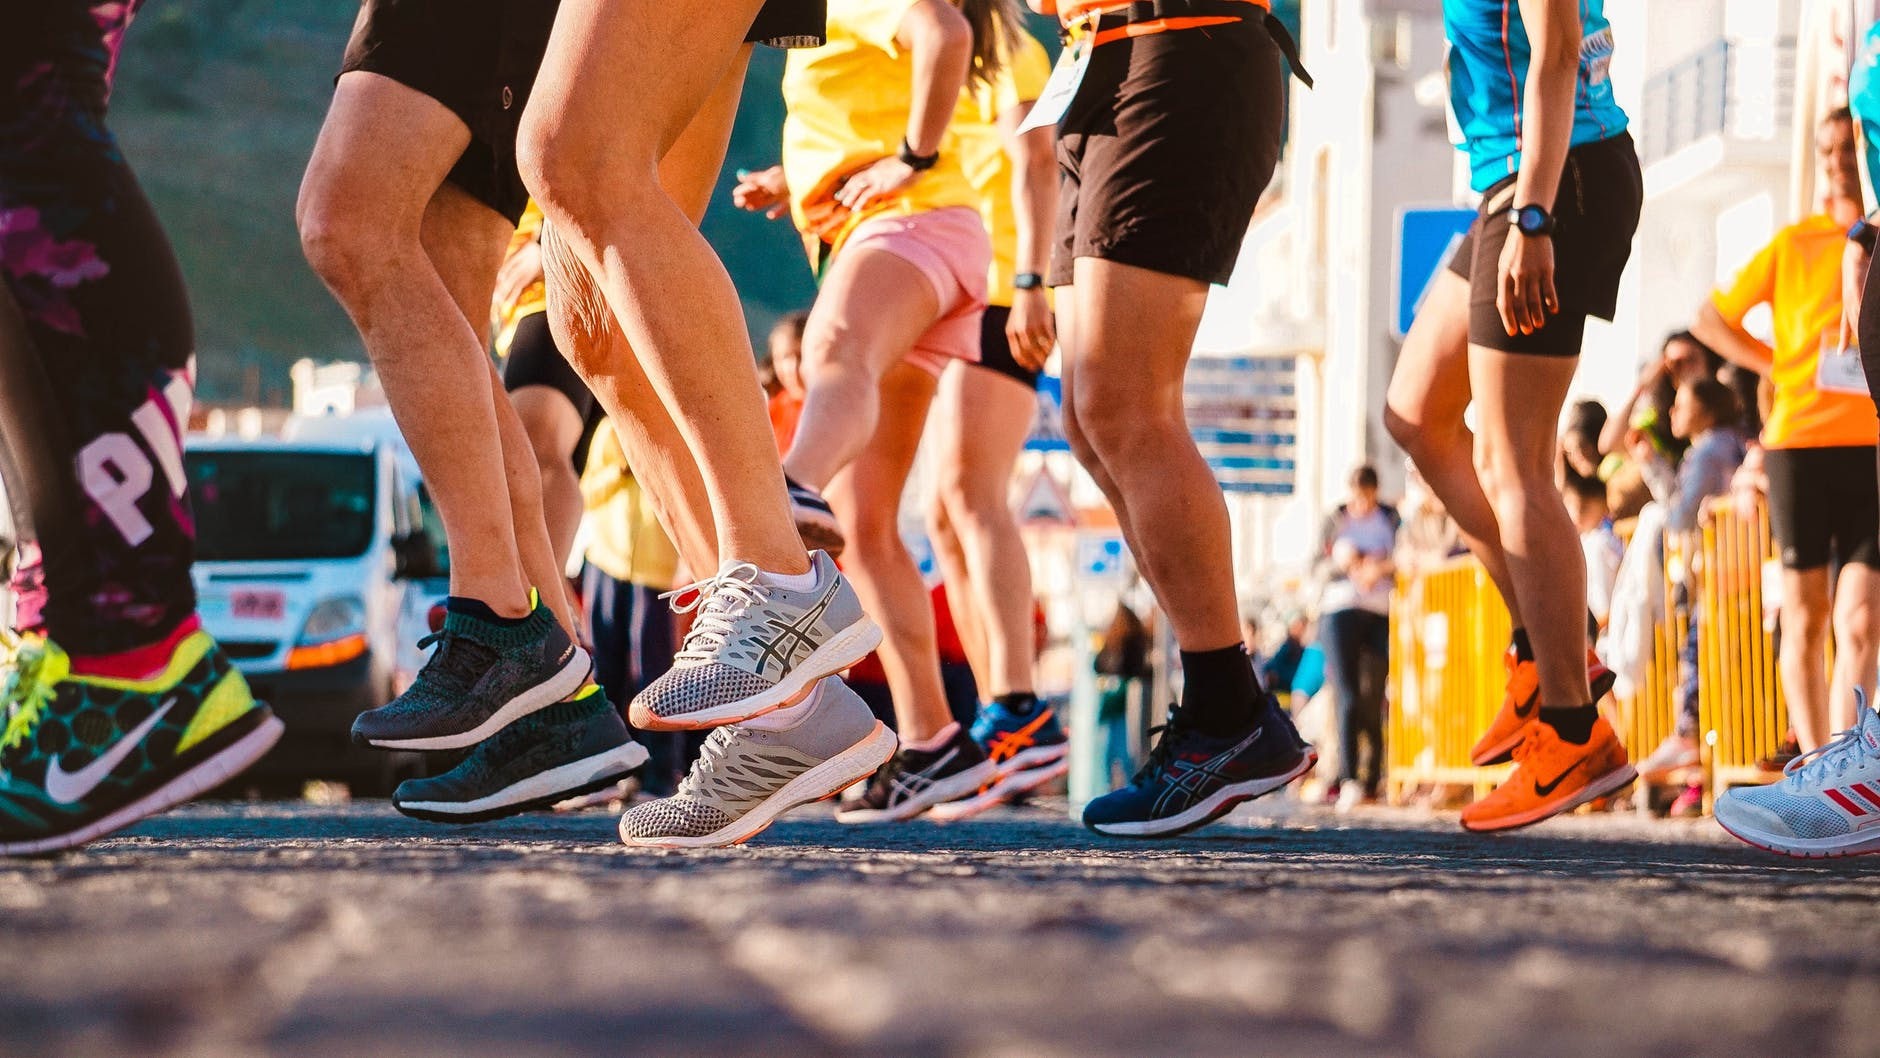 The legs and feet of lots of runners